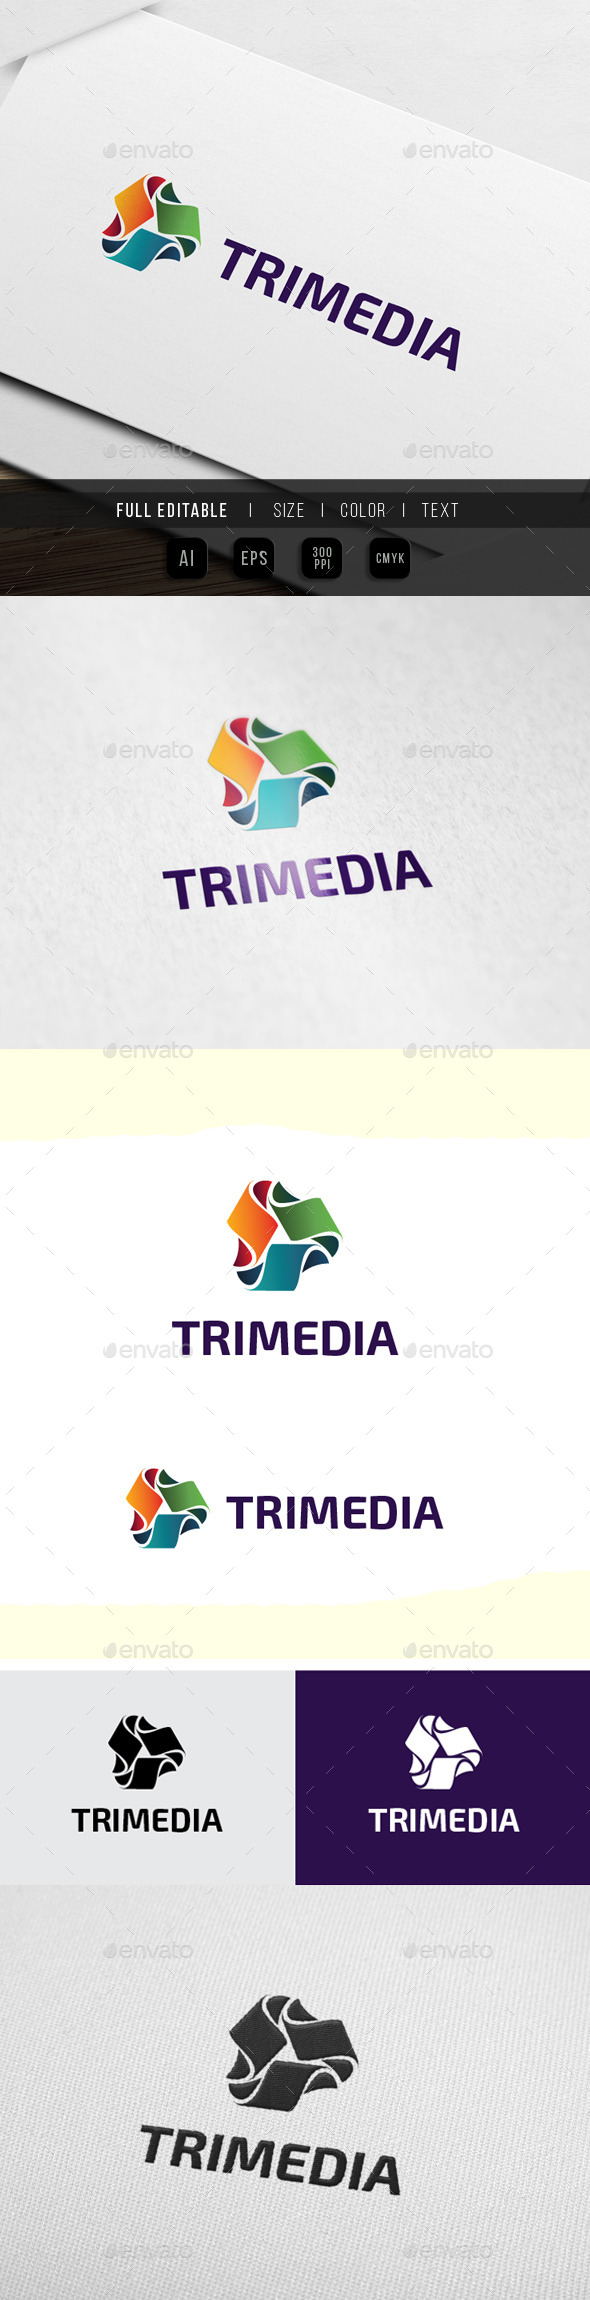 App Media - Technology Industry - Abstract Logo Templates